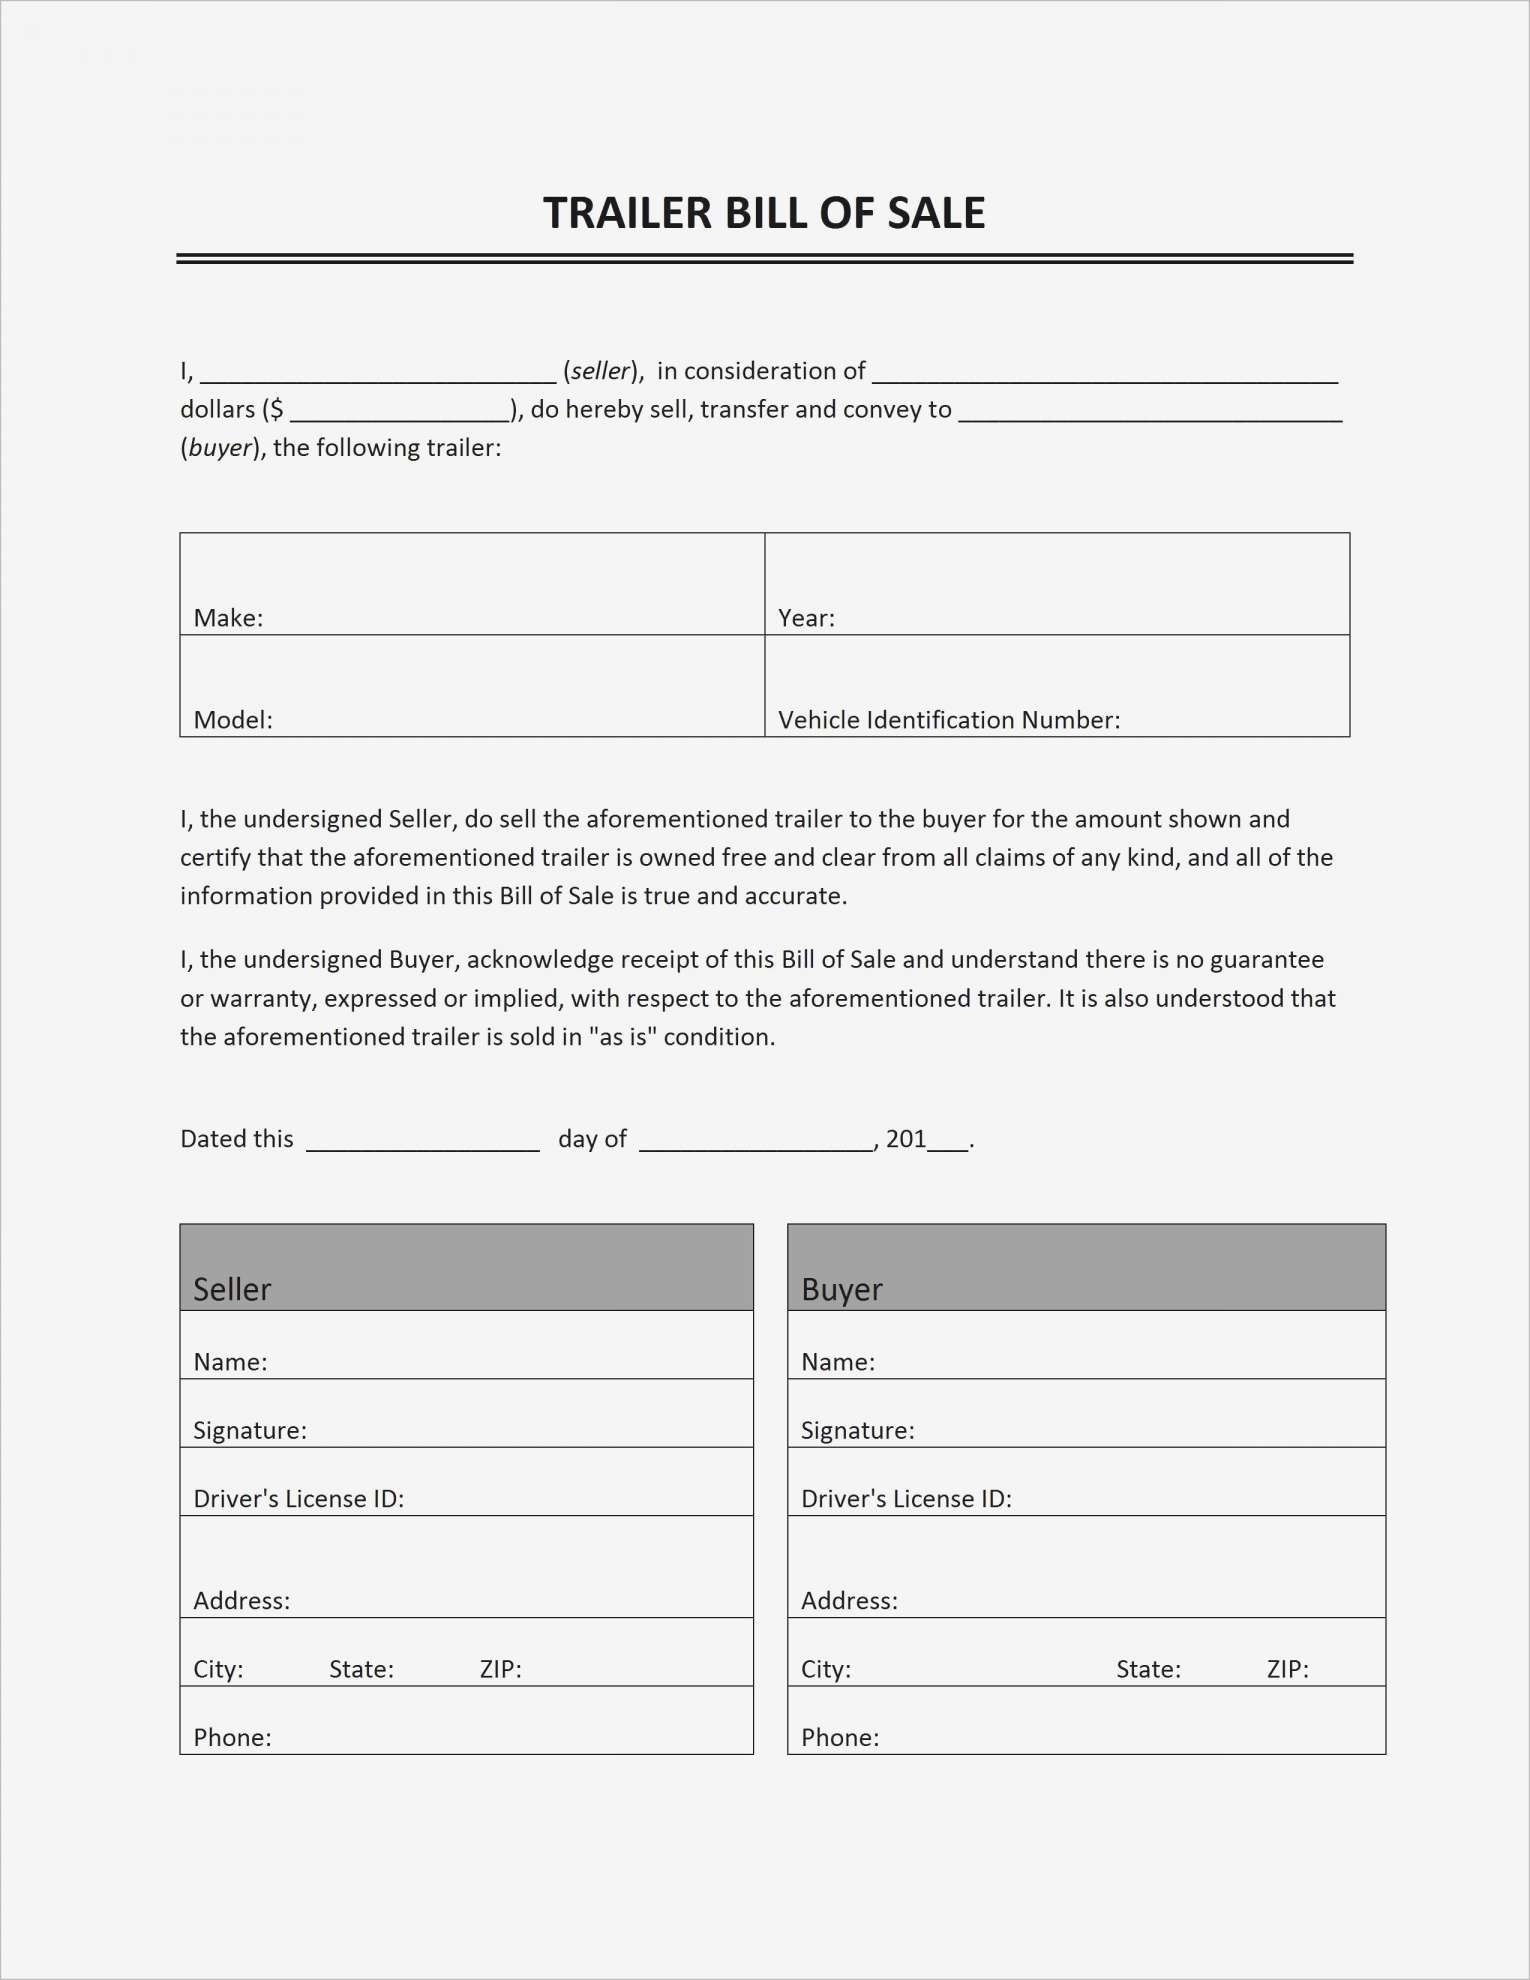 Lawn Care Invoice Template Pdf Work Order Invoice Template Best With Lawn Care Invoice Template